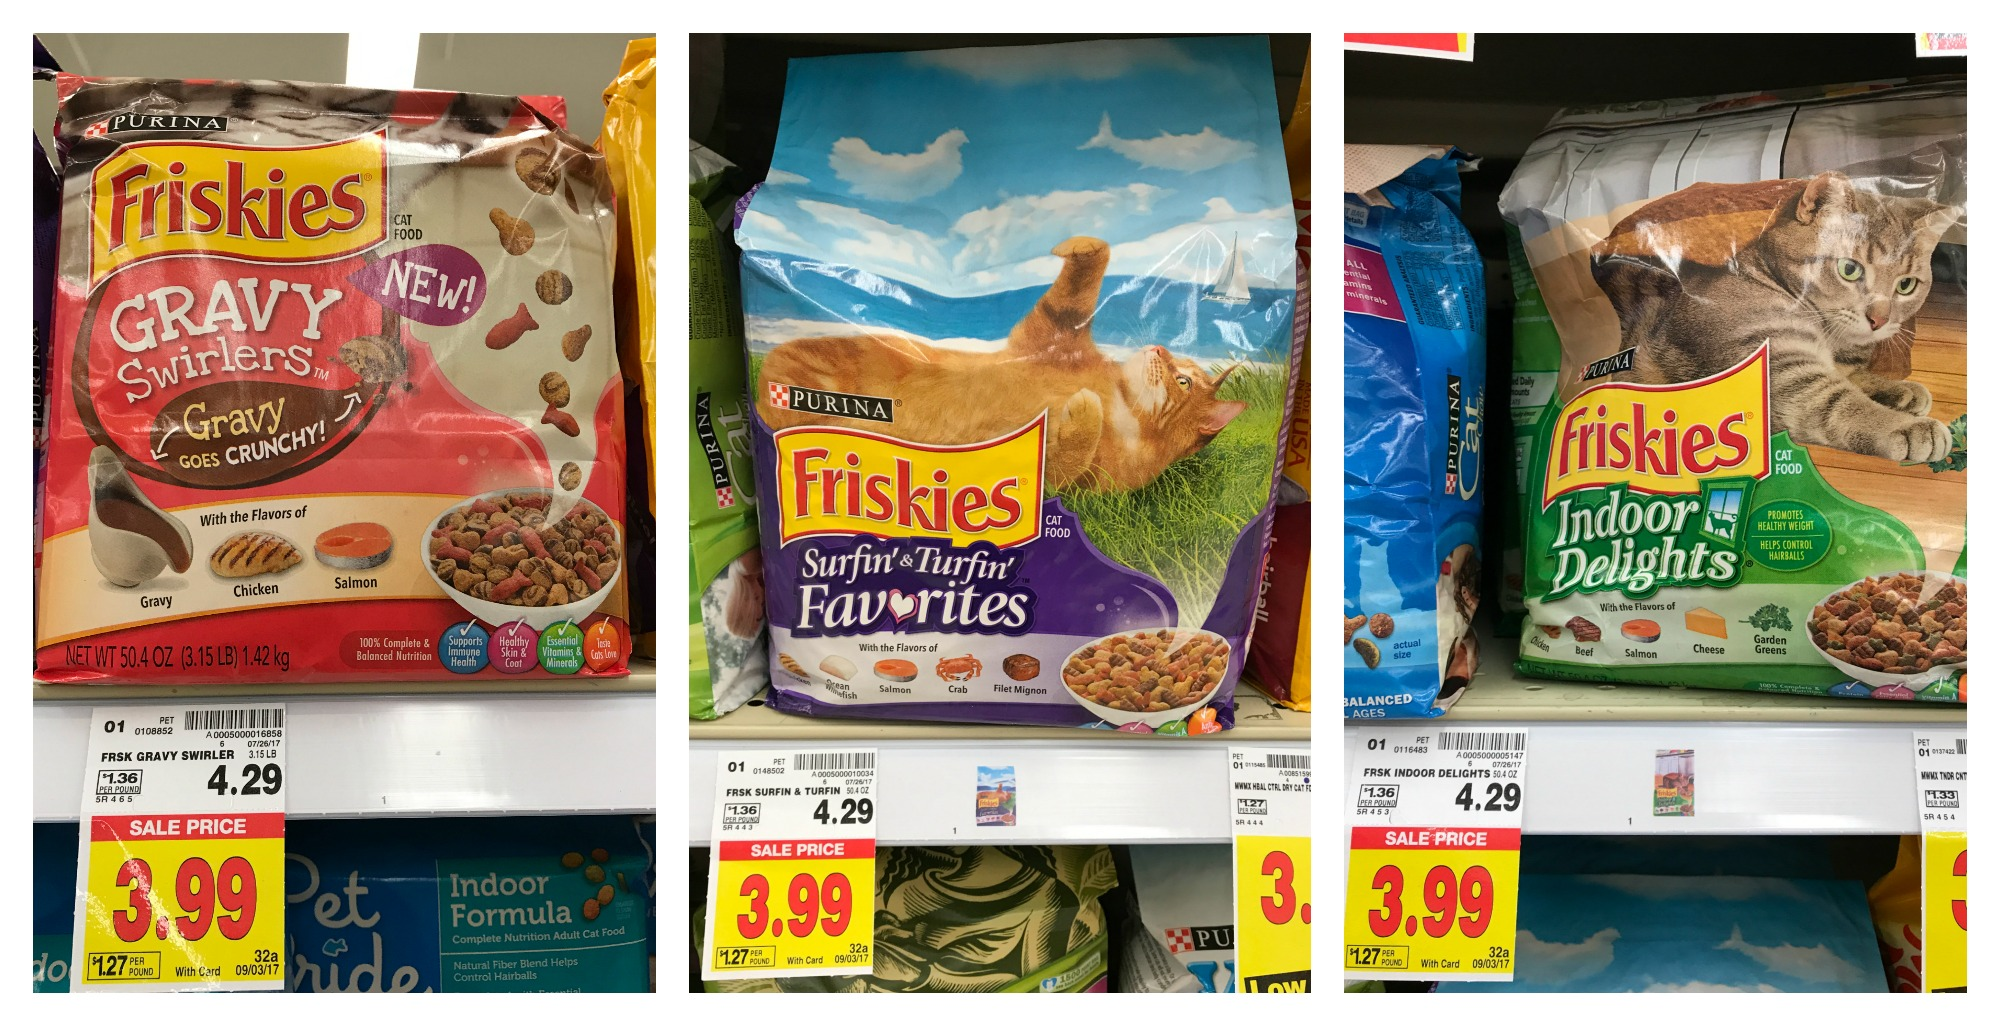 Friskies canned cat food coupons 2018